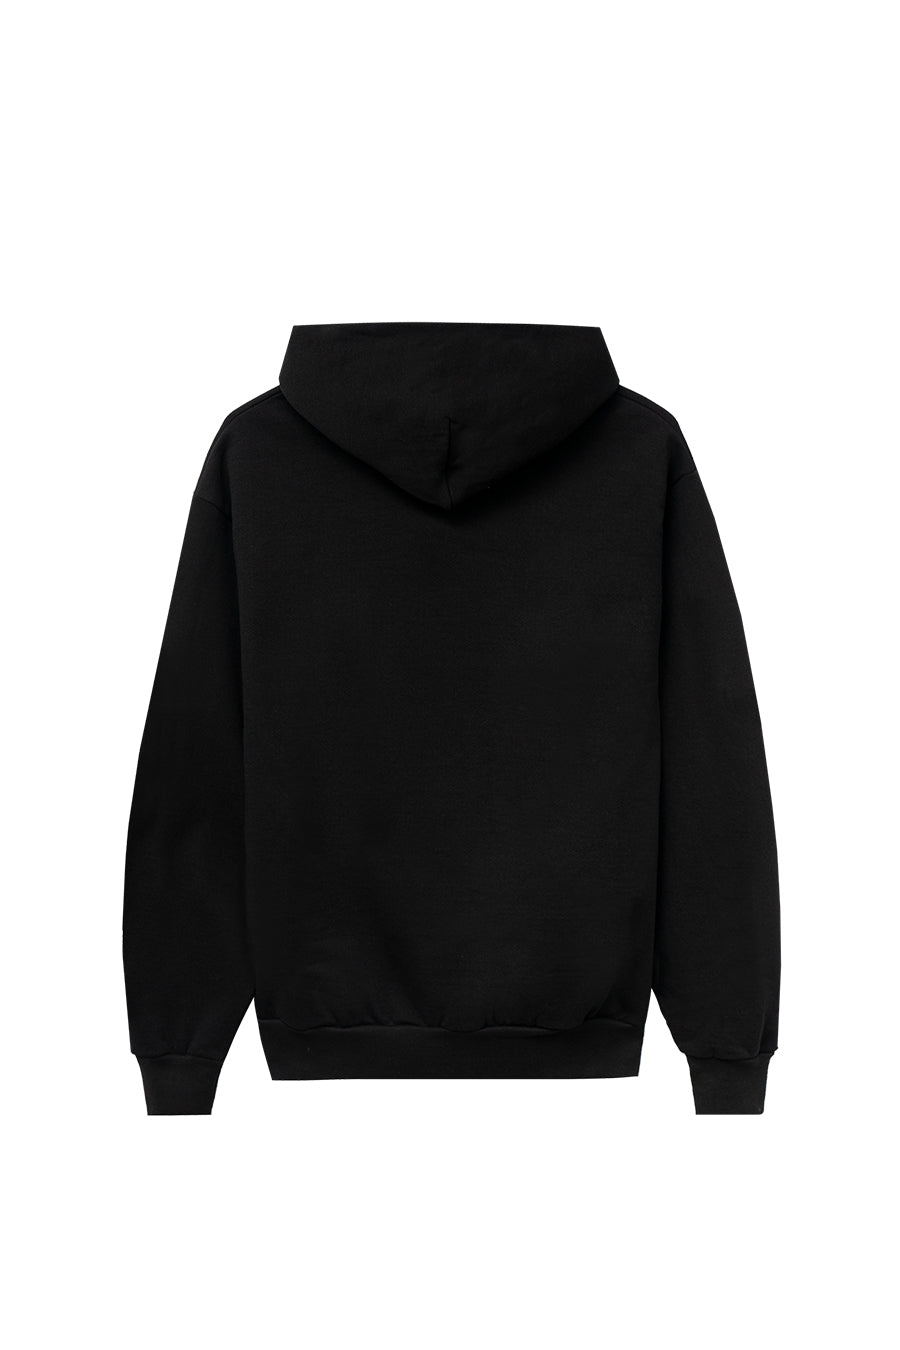 Real Bad Man - Black Backwards Logo Hoodie | 1032 SPACE